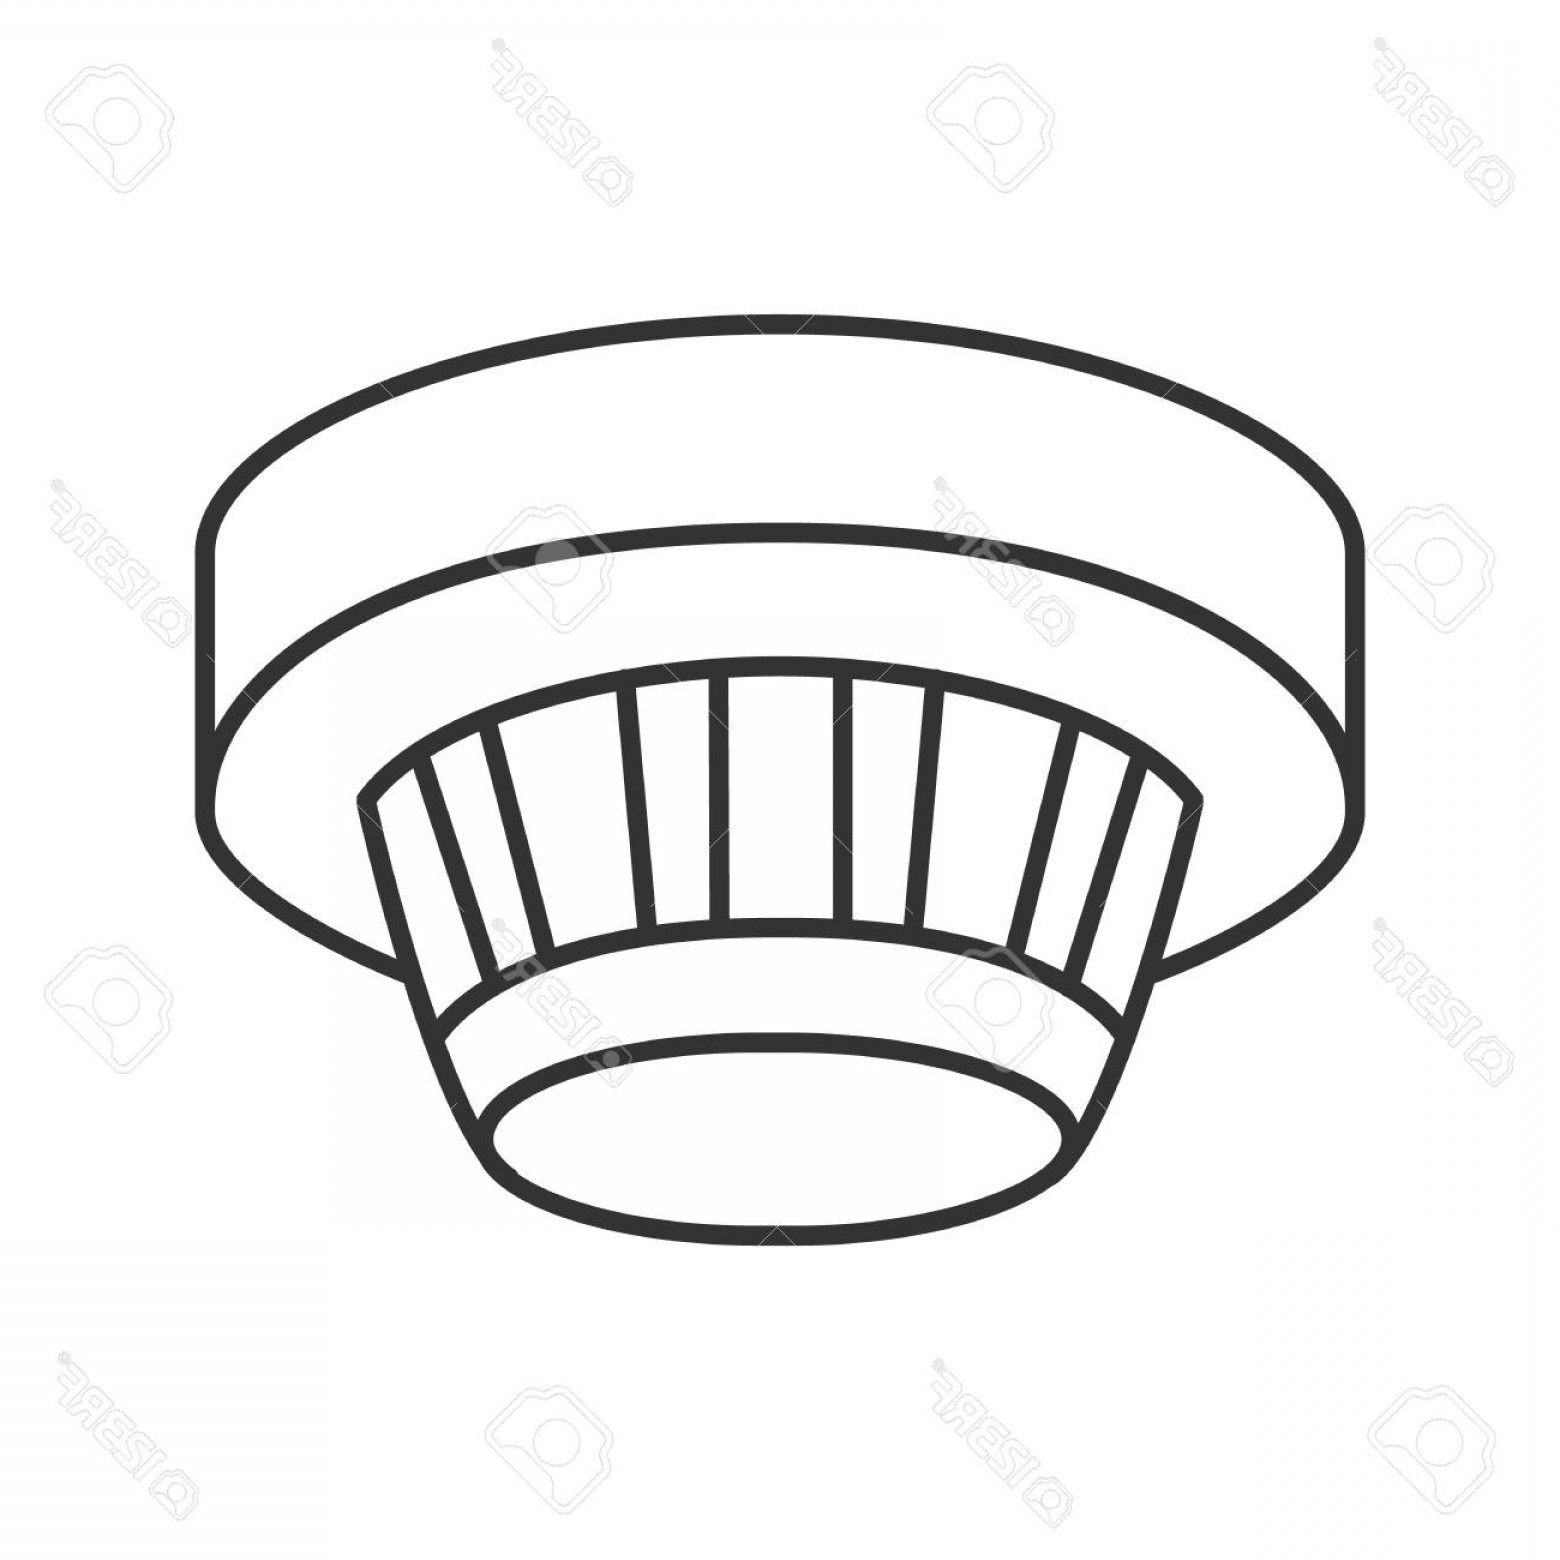 Fire Alarm Vector: Photostock Vector Smoke Detector Linear Icon Fire Alarm System Thin Line Illustration Contour Symbol Vector Isolated O